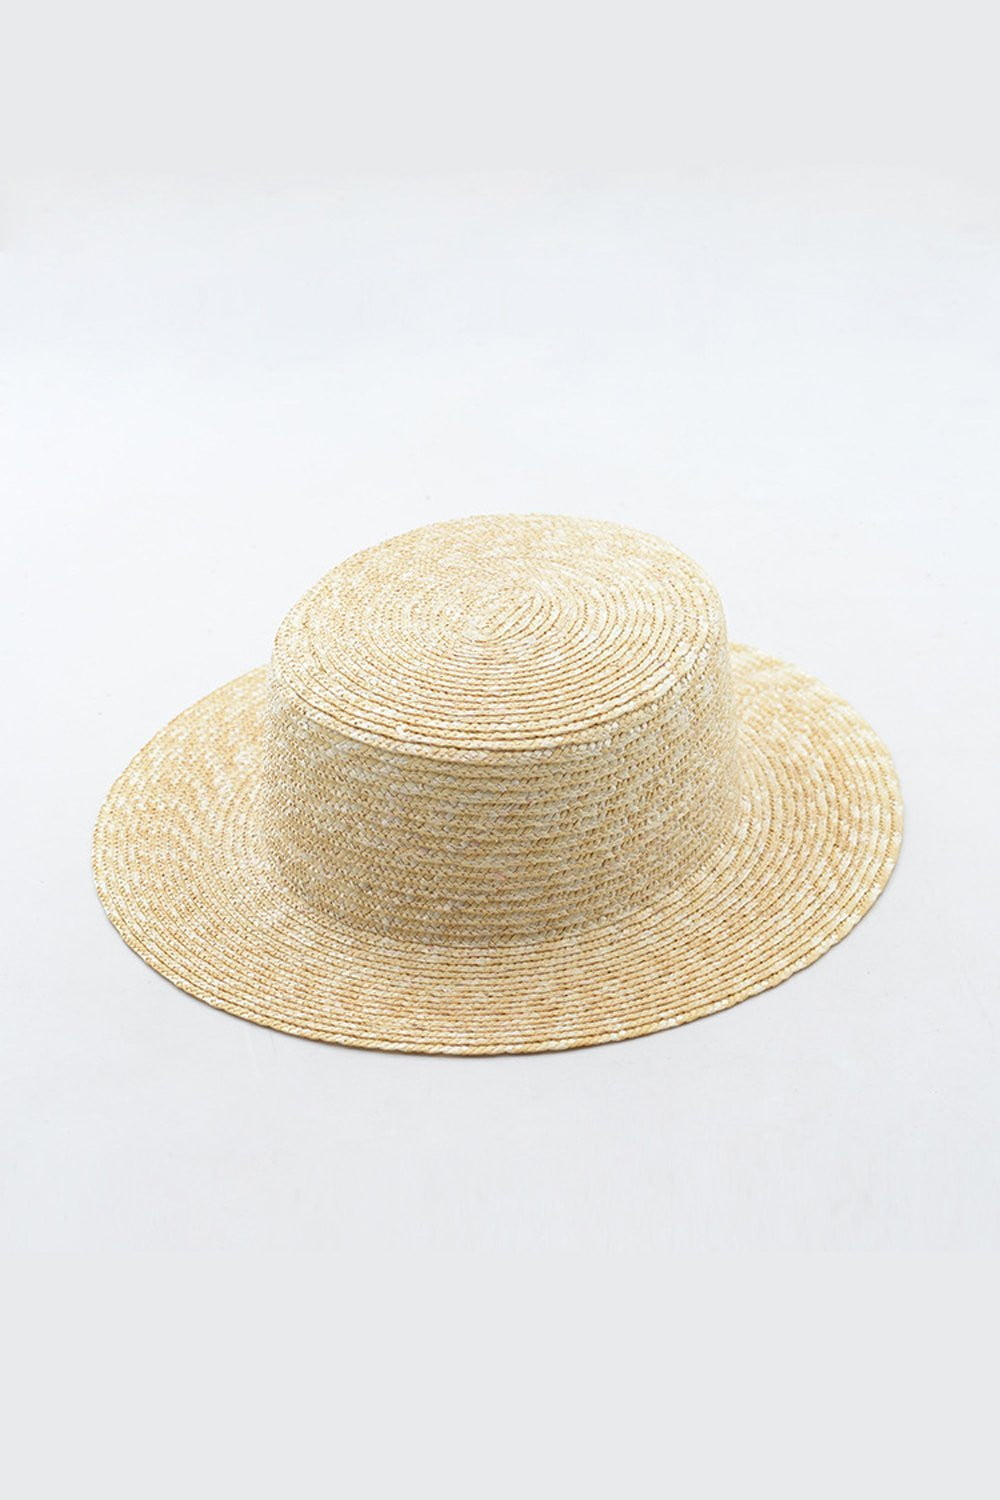 Wheat Straw Flat Boater